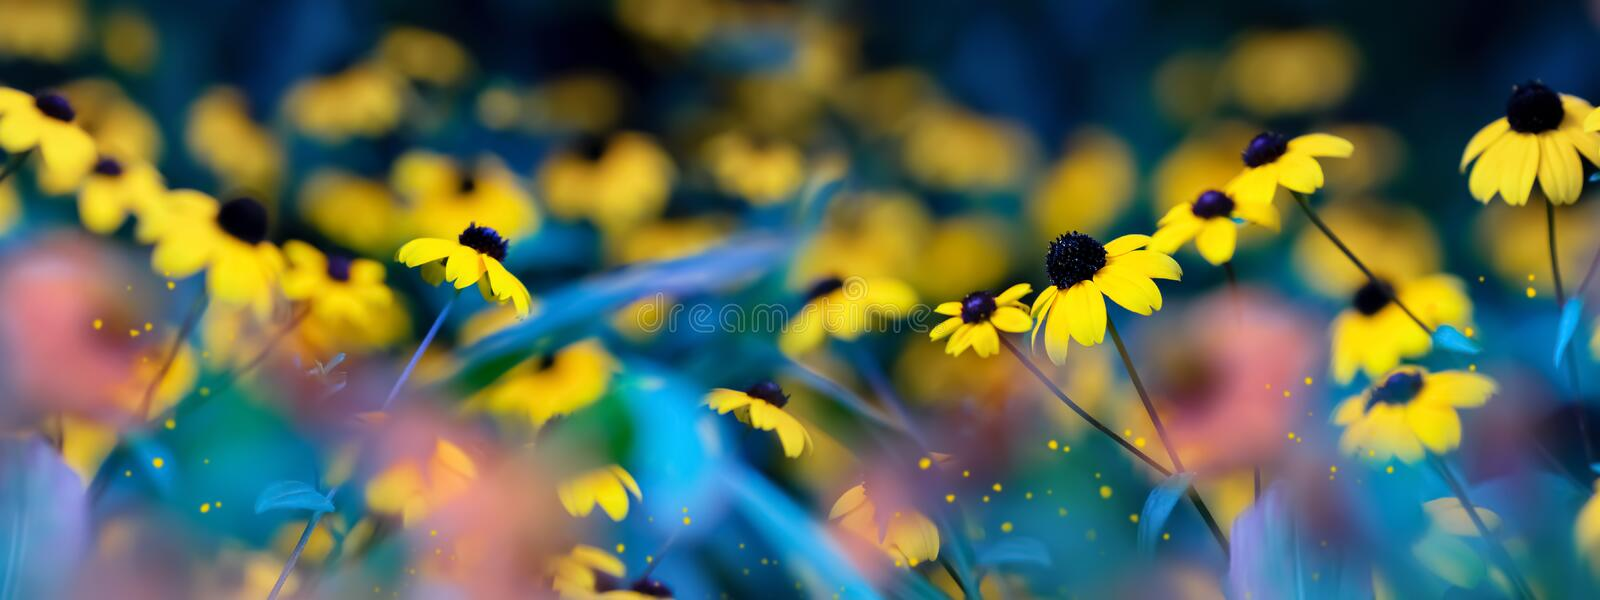 Small yellow bright summer flowers on a background of blue and green foliage in a fairy garden. Macro artistic image. royalty free stock photos